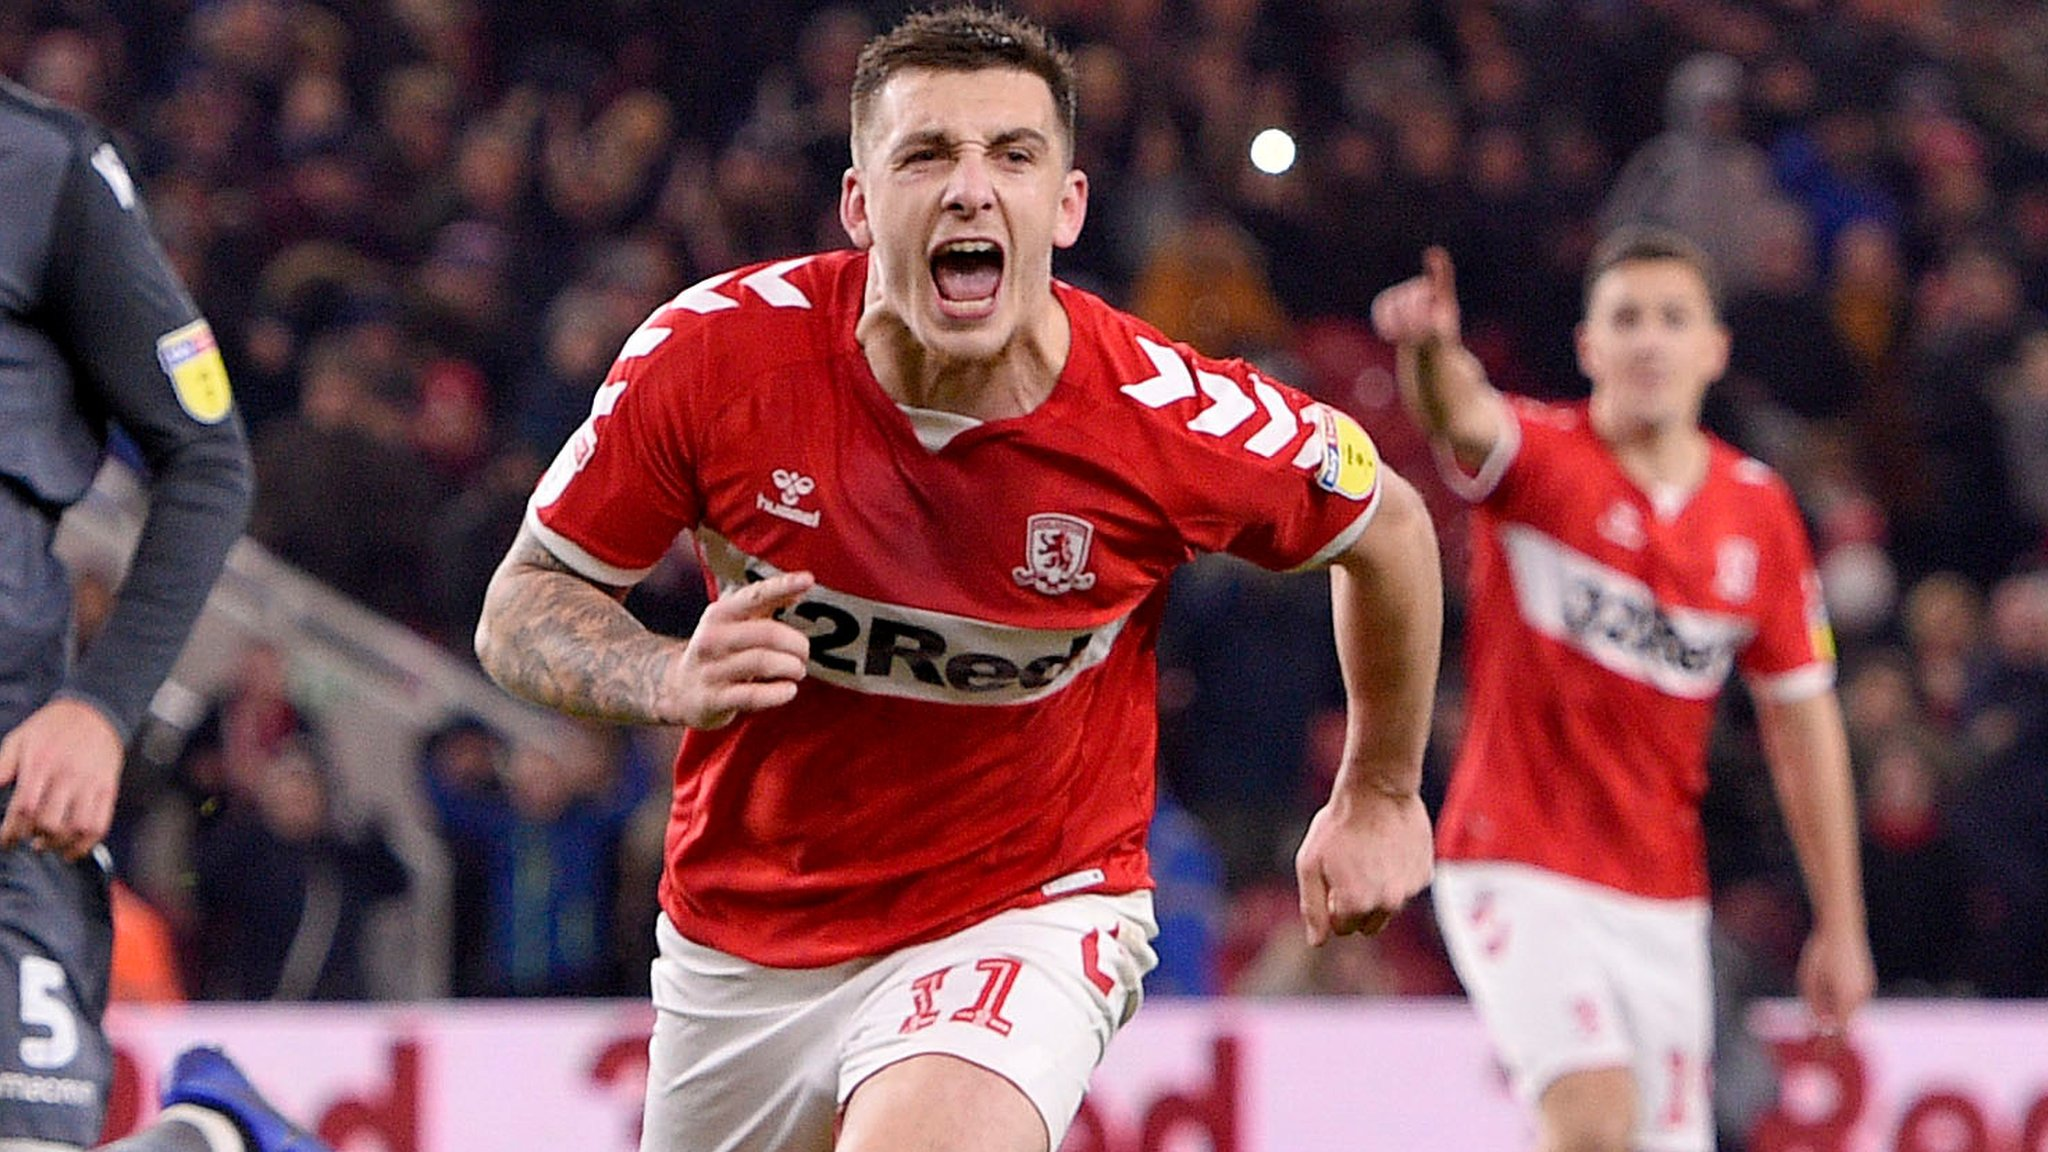 Middlesbrough 1-1 Millwall: Boro's late show denies Lions